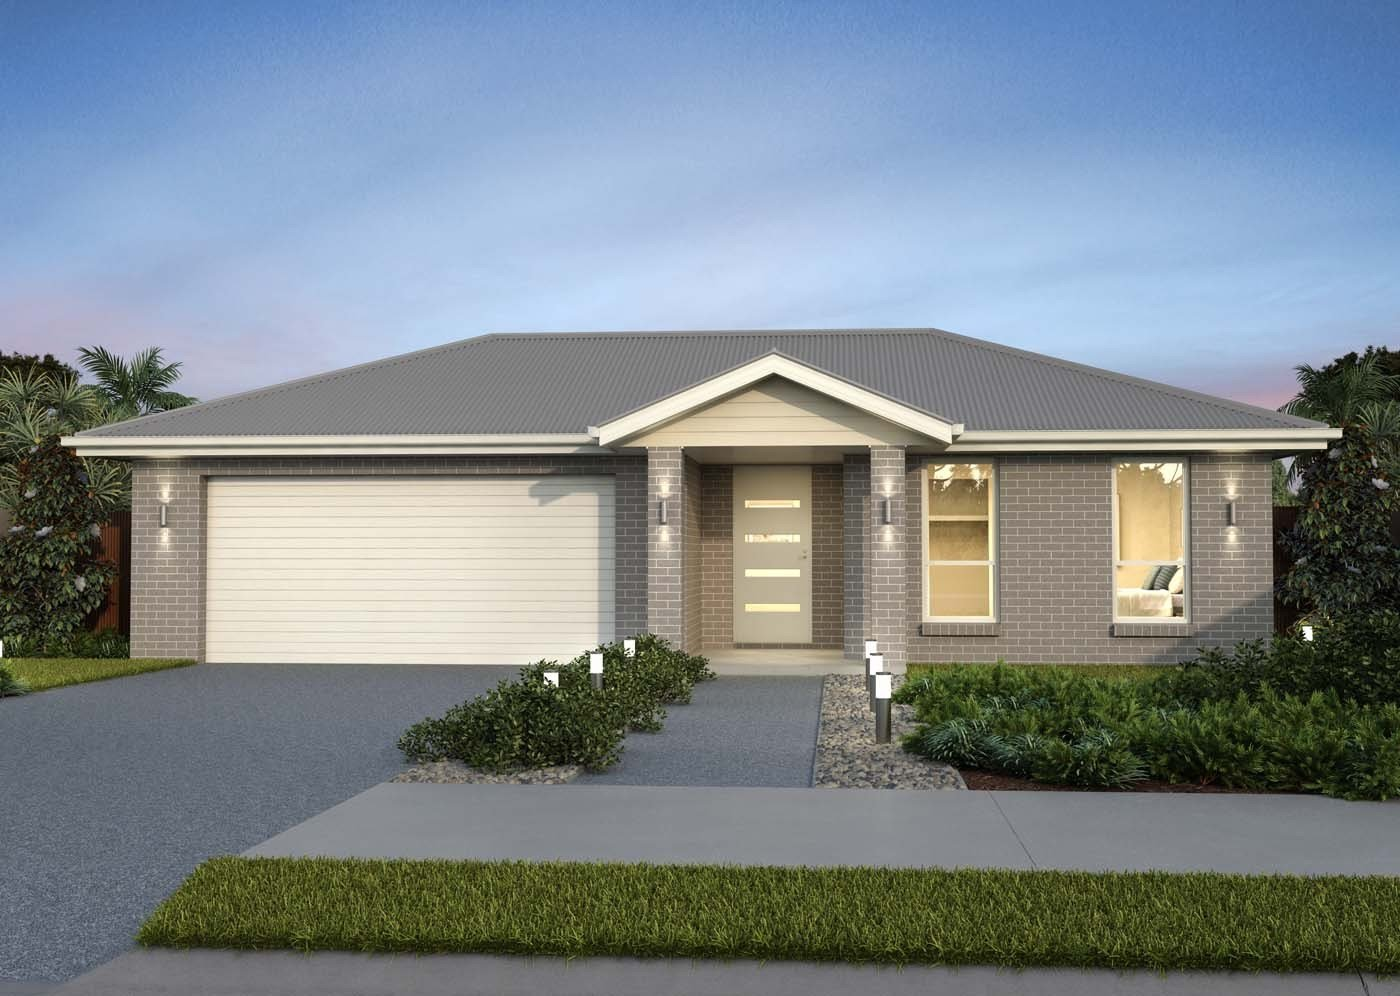 Best 4 Bedroom Home Design Single Storey House Plan – Fitzroy With Pictures